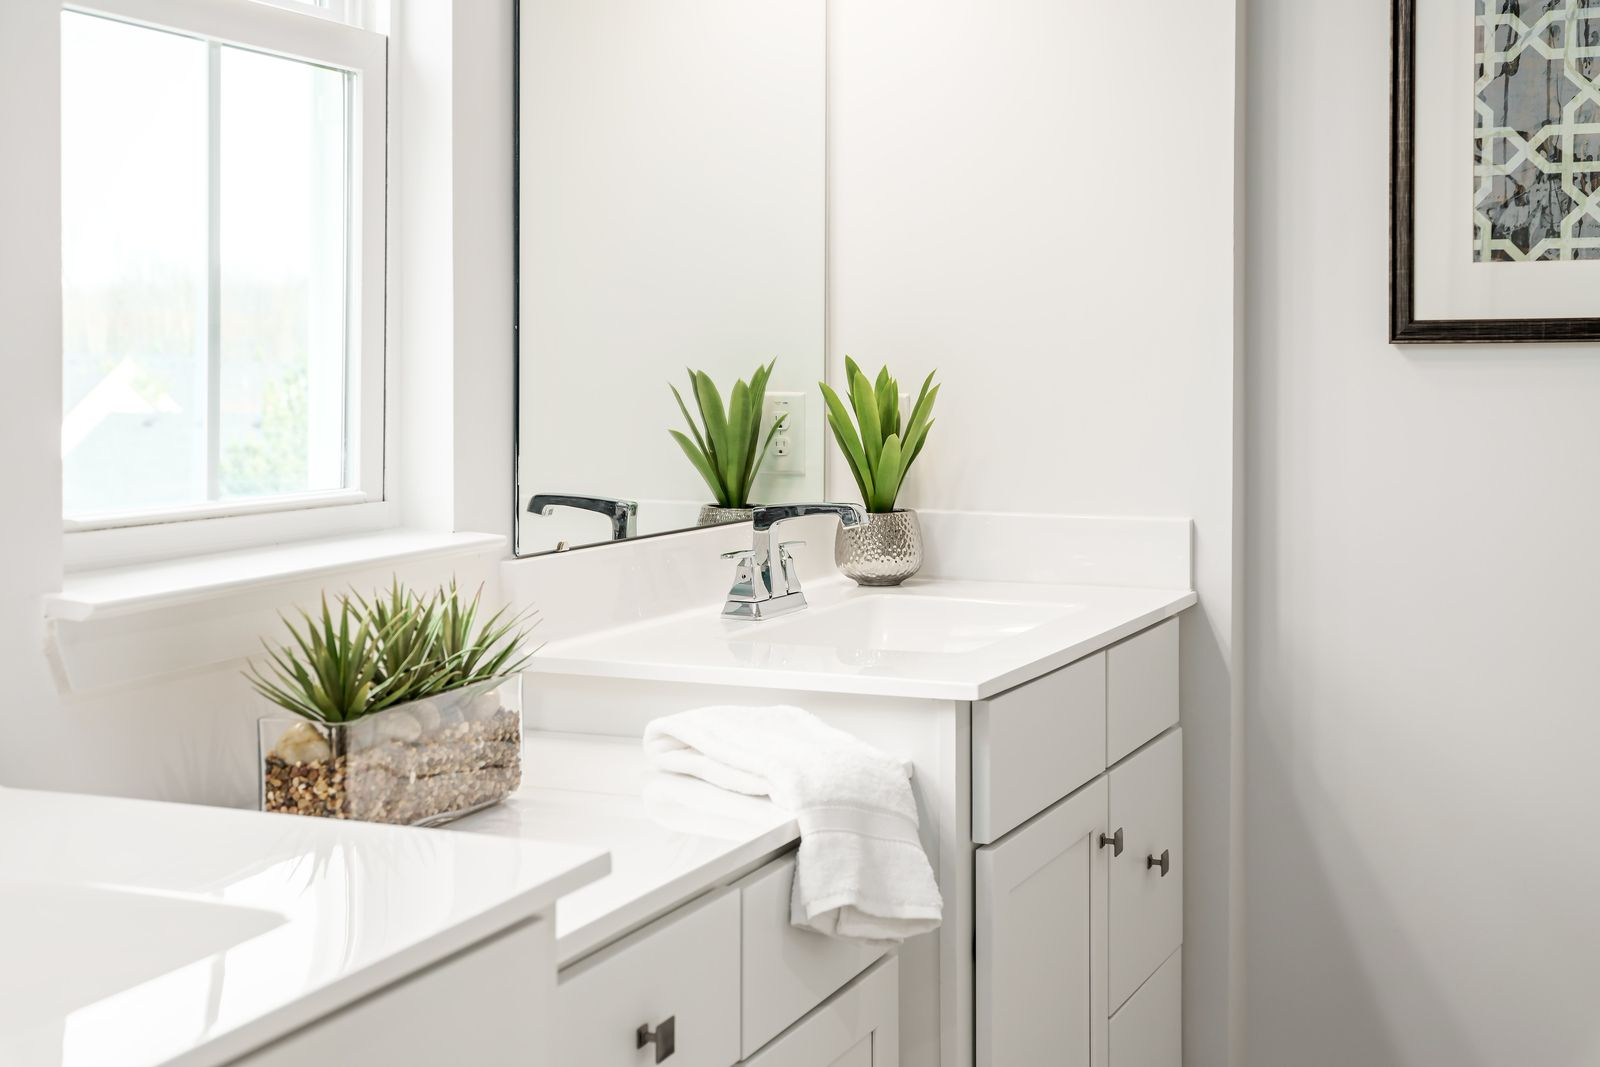 Bathroom featured in the Wexford By Ryan Homes in Akron, OH